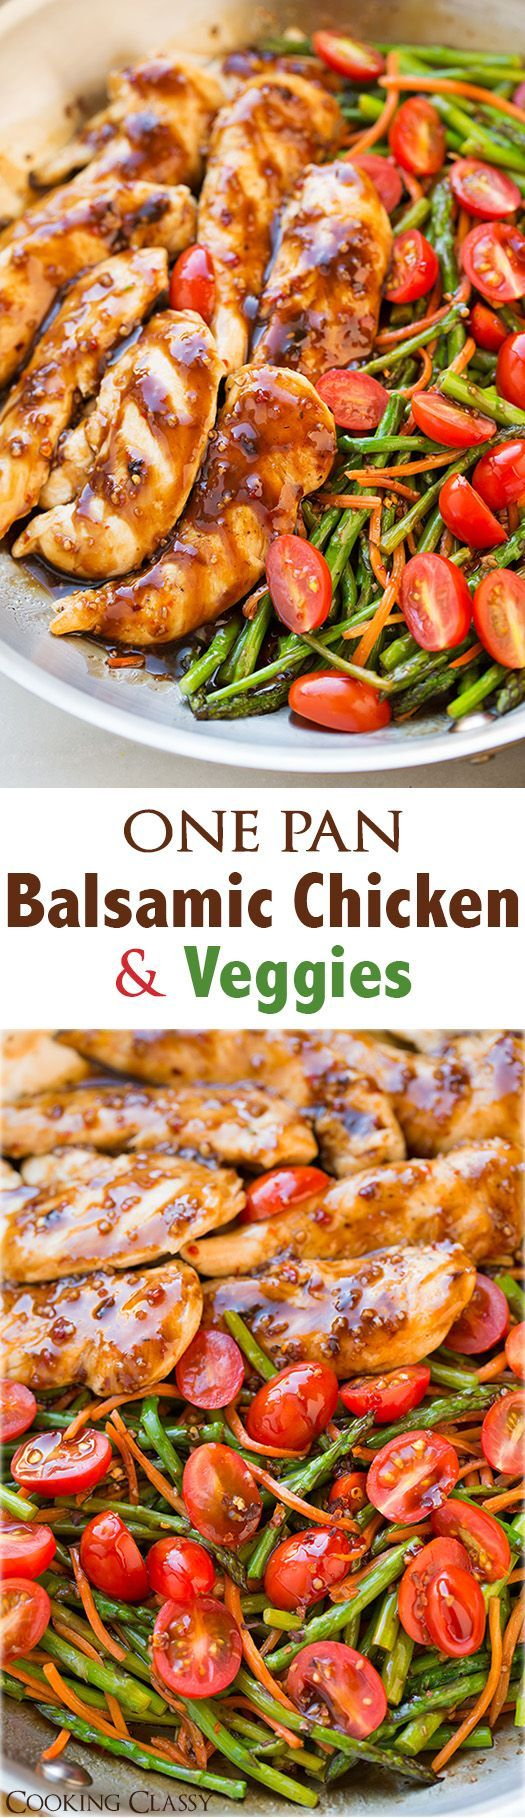 down coats for women DELICIOUS  FAST  ONE POT CLEANUP  WILL MAKE AGAIN  One Pan Balsamic Chicken and Veggies   this is seriously easy to make and it tastes AMAZING  Had it ready in 20 minutes